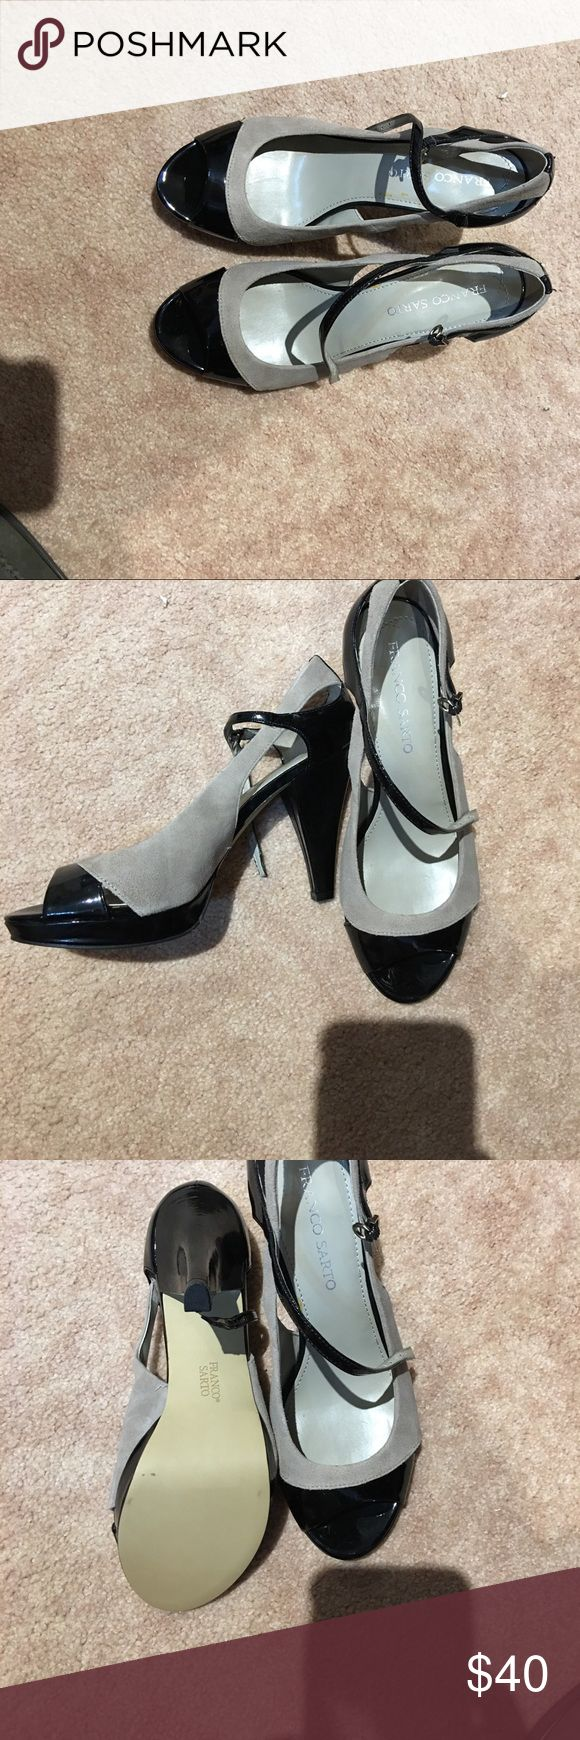 Black and gray Franco Sarto high toeless shoes Size 10 Franco Sarto high heel Black shinny and gray suede shoes Never Worn Franco Sarto Shoes Heels